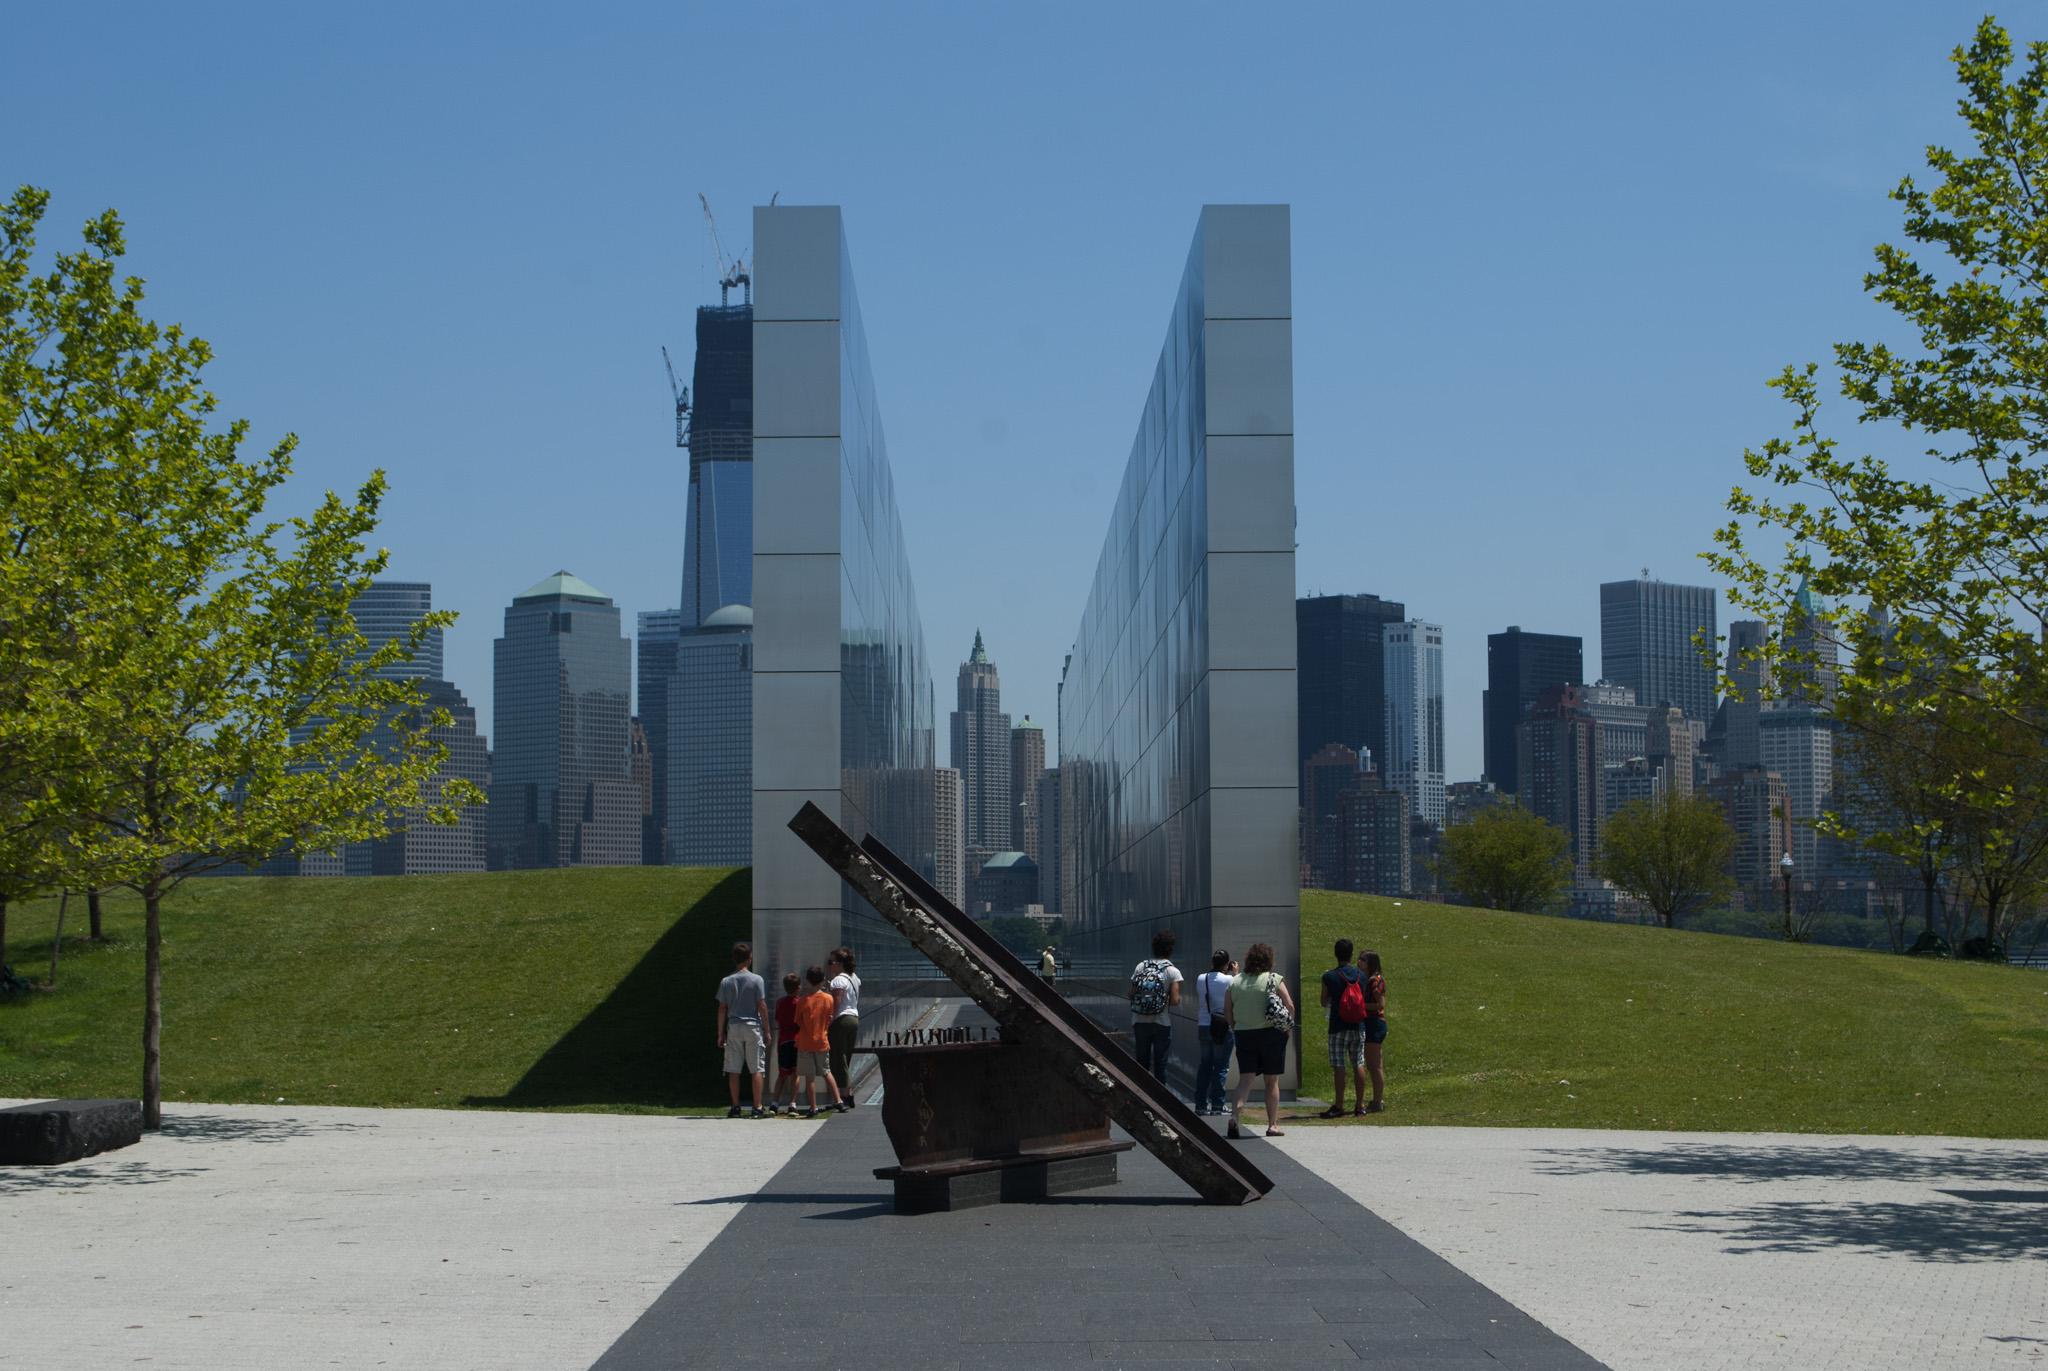 liberty state park in new jersey